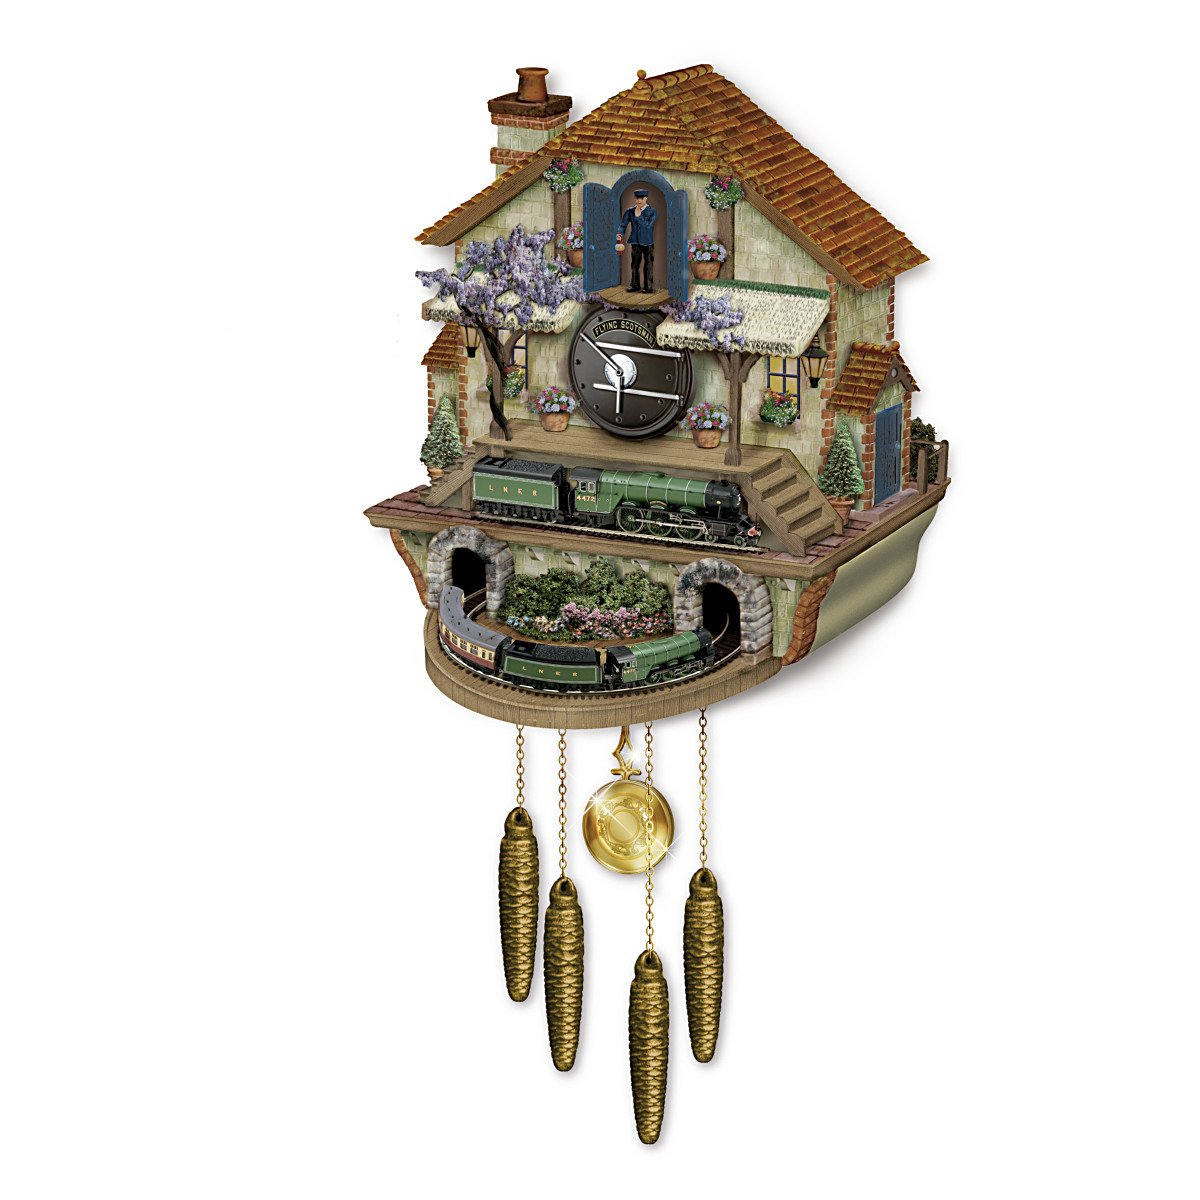 Steam Engine Train Cuckoo Clock: The Flying Scotsman Memories Of Steam by The Bradford Exchange by Bradford Exchange